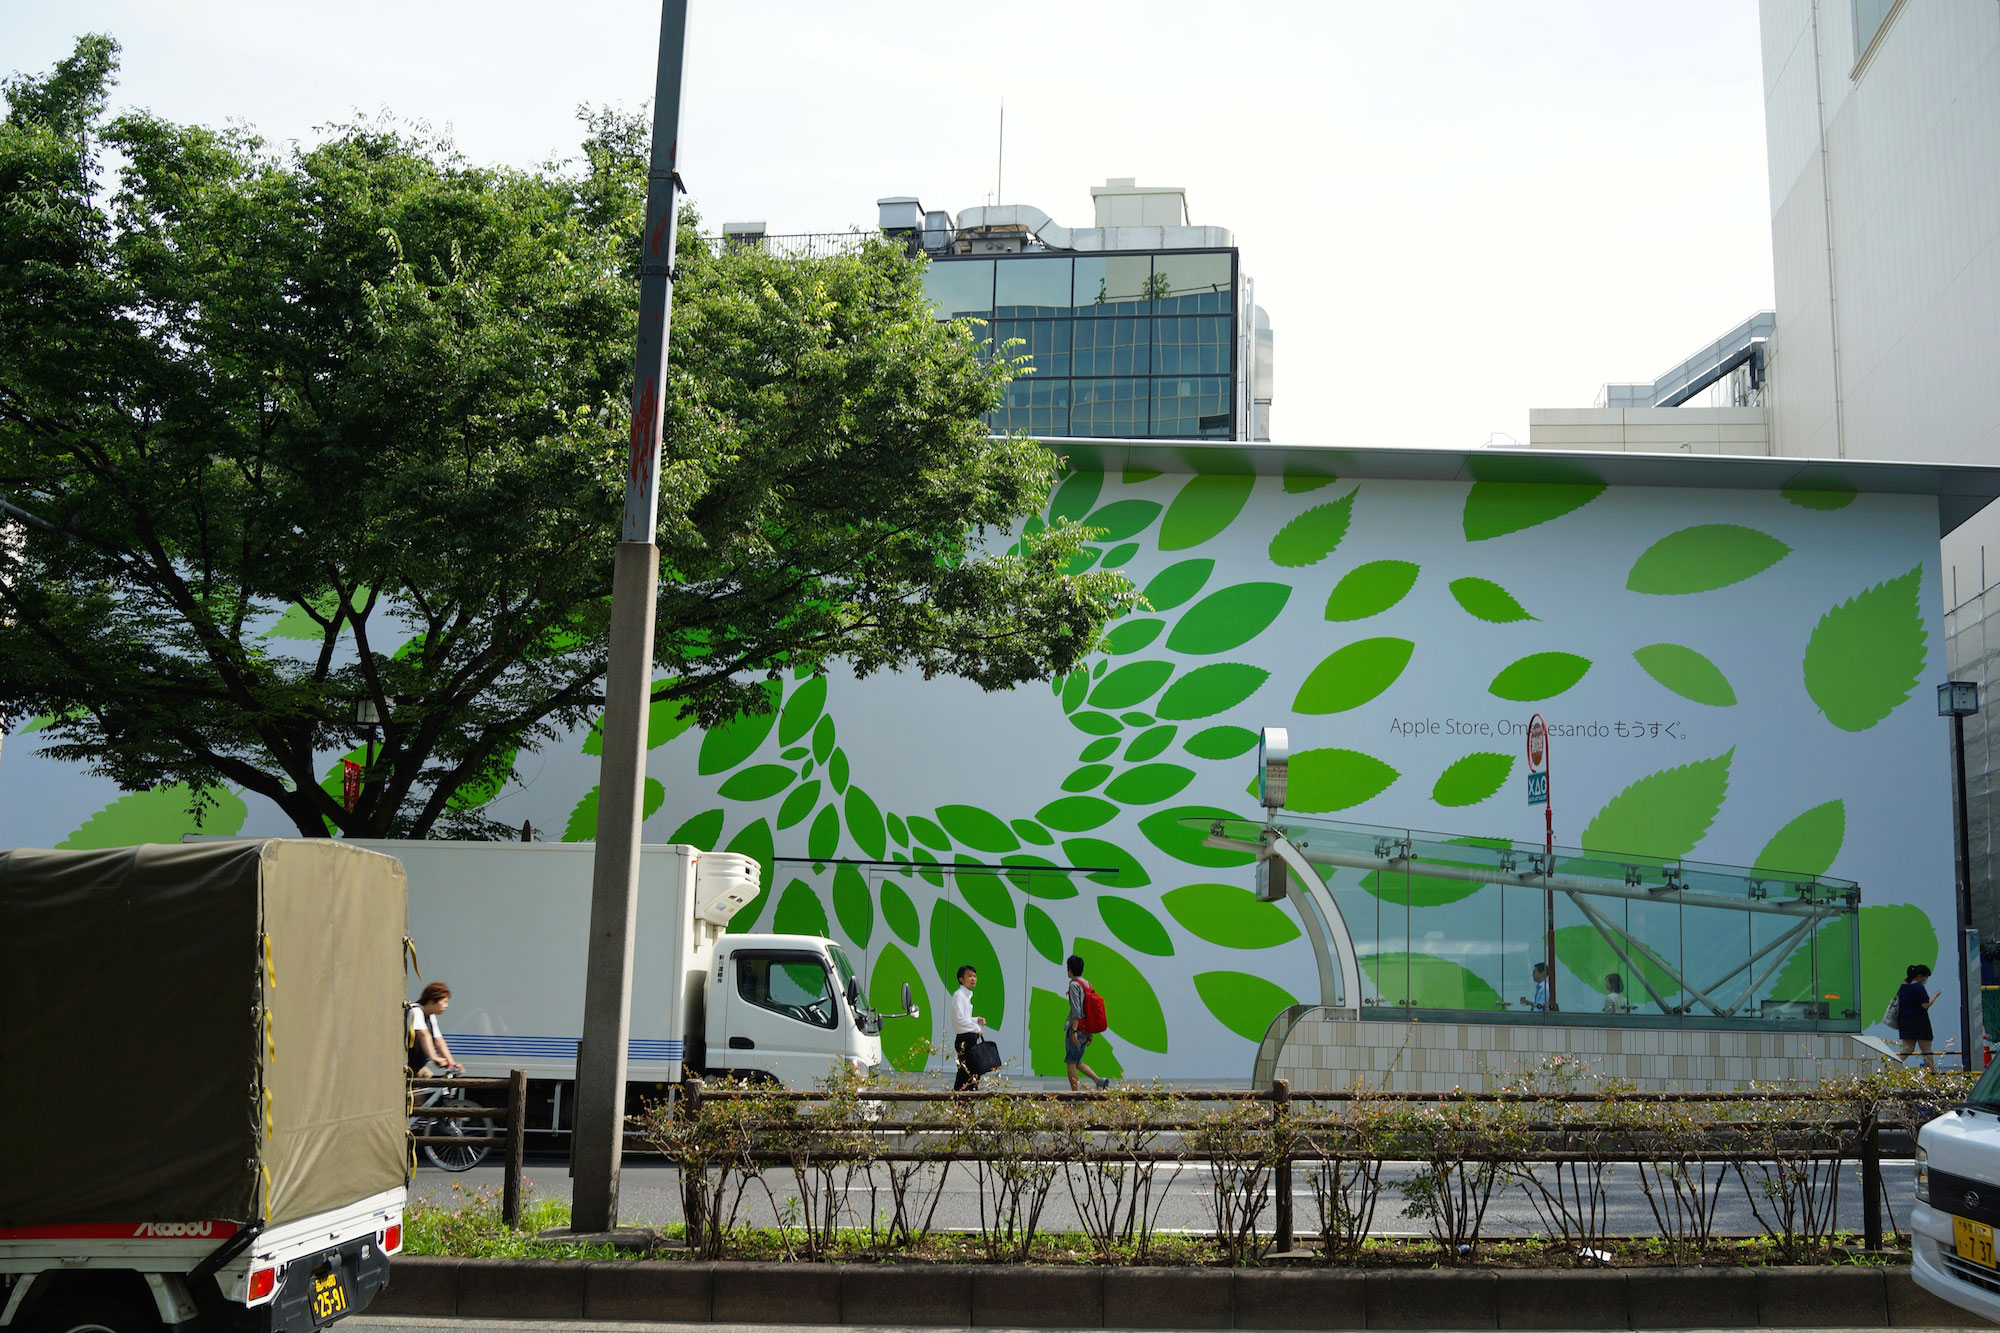 Bepflanzte Wand Bepflanzter Apple Store In Tokio Geplant News